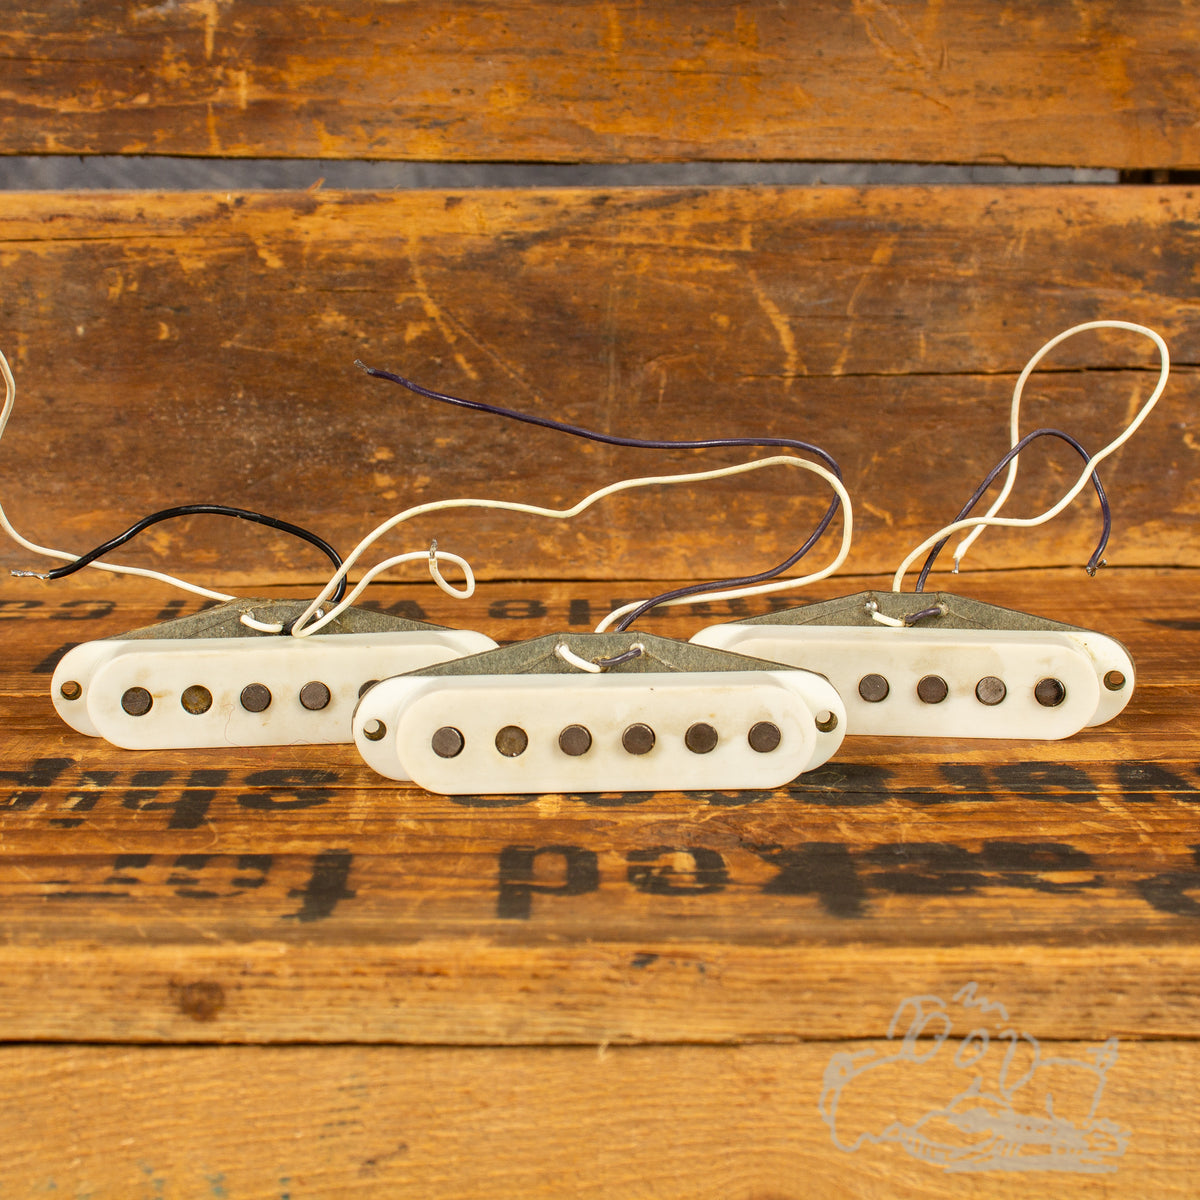 1974 Fender Stratocaster pickups - Set of three